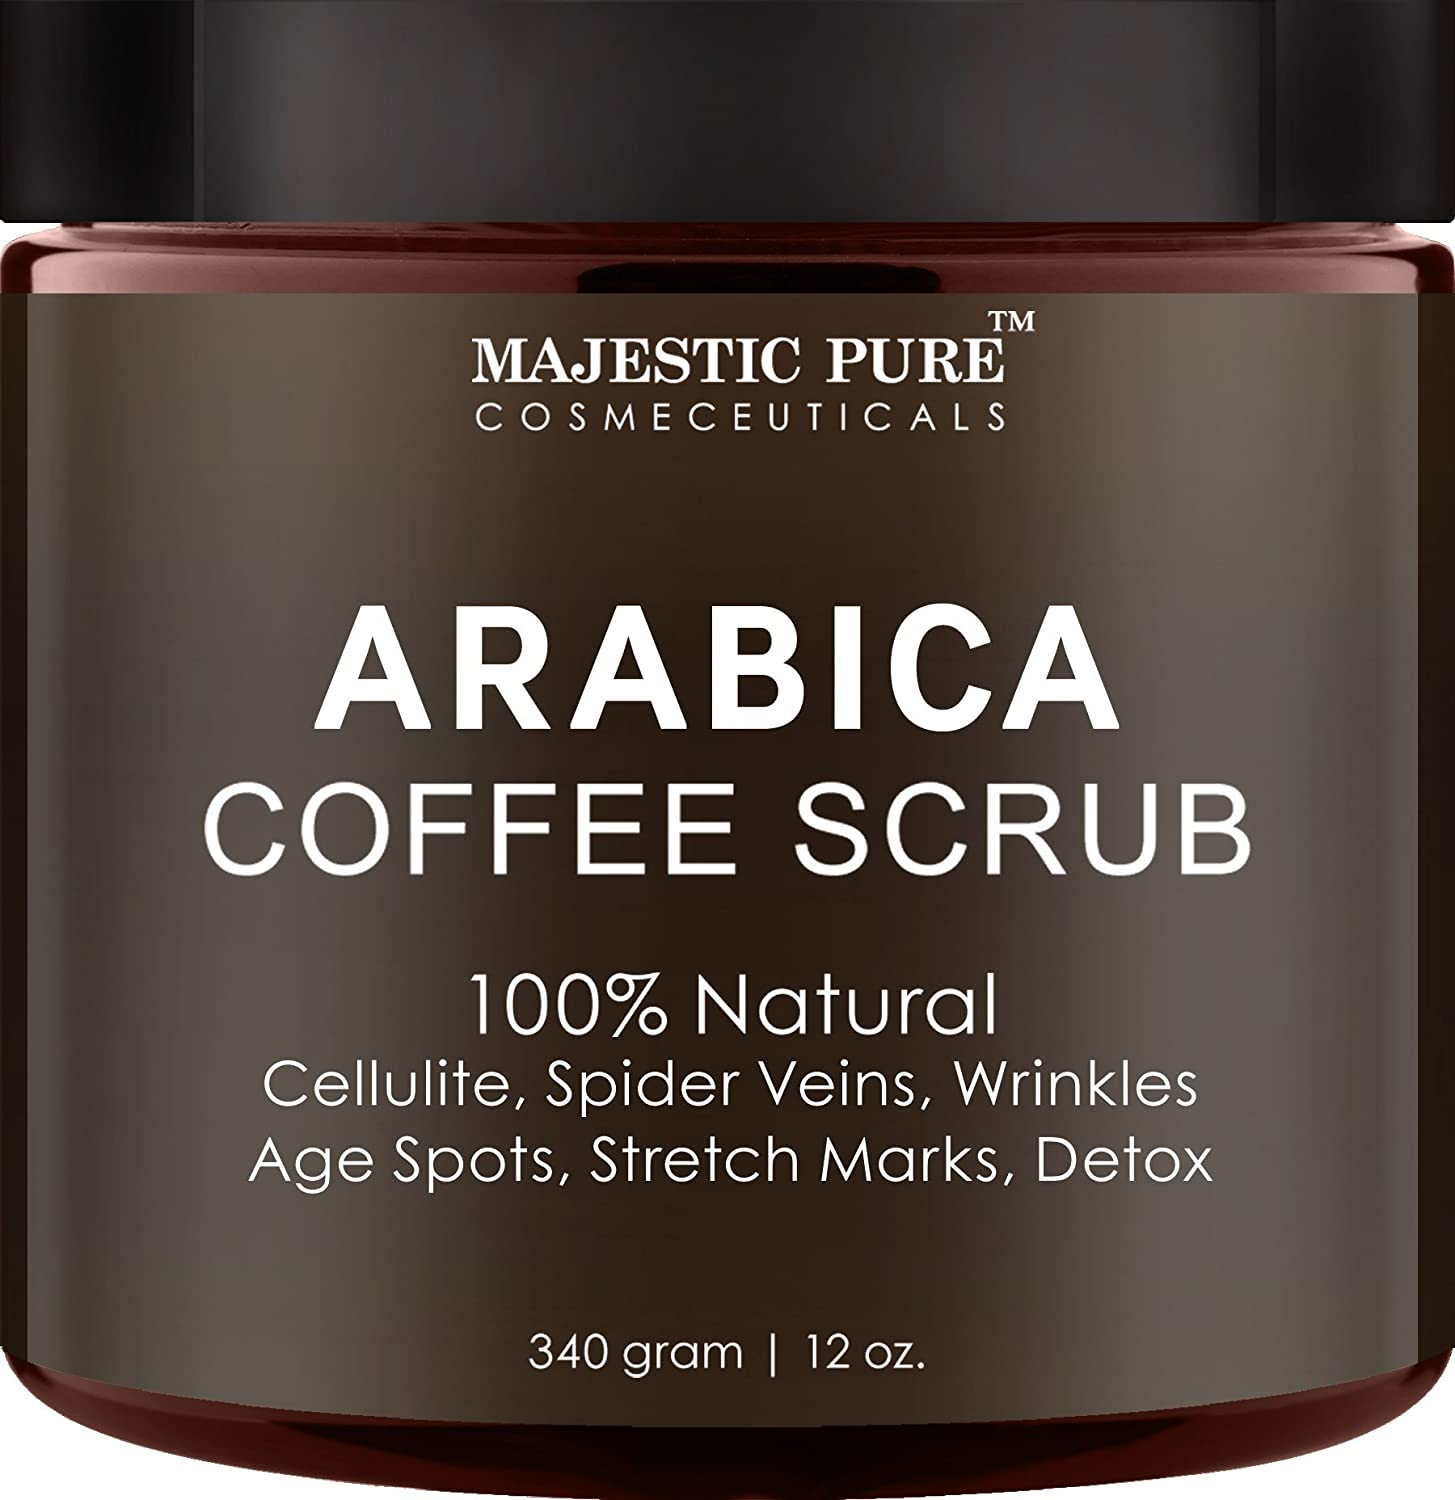 majestic office coffee bar. Amazon com  Arabica Coffee Scrub From Majestic Pure Helps Reduce Cellulite Wrinkles Stretch Marks Spider Veins Acne Age Spots 100 Natural Treatment